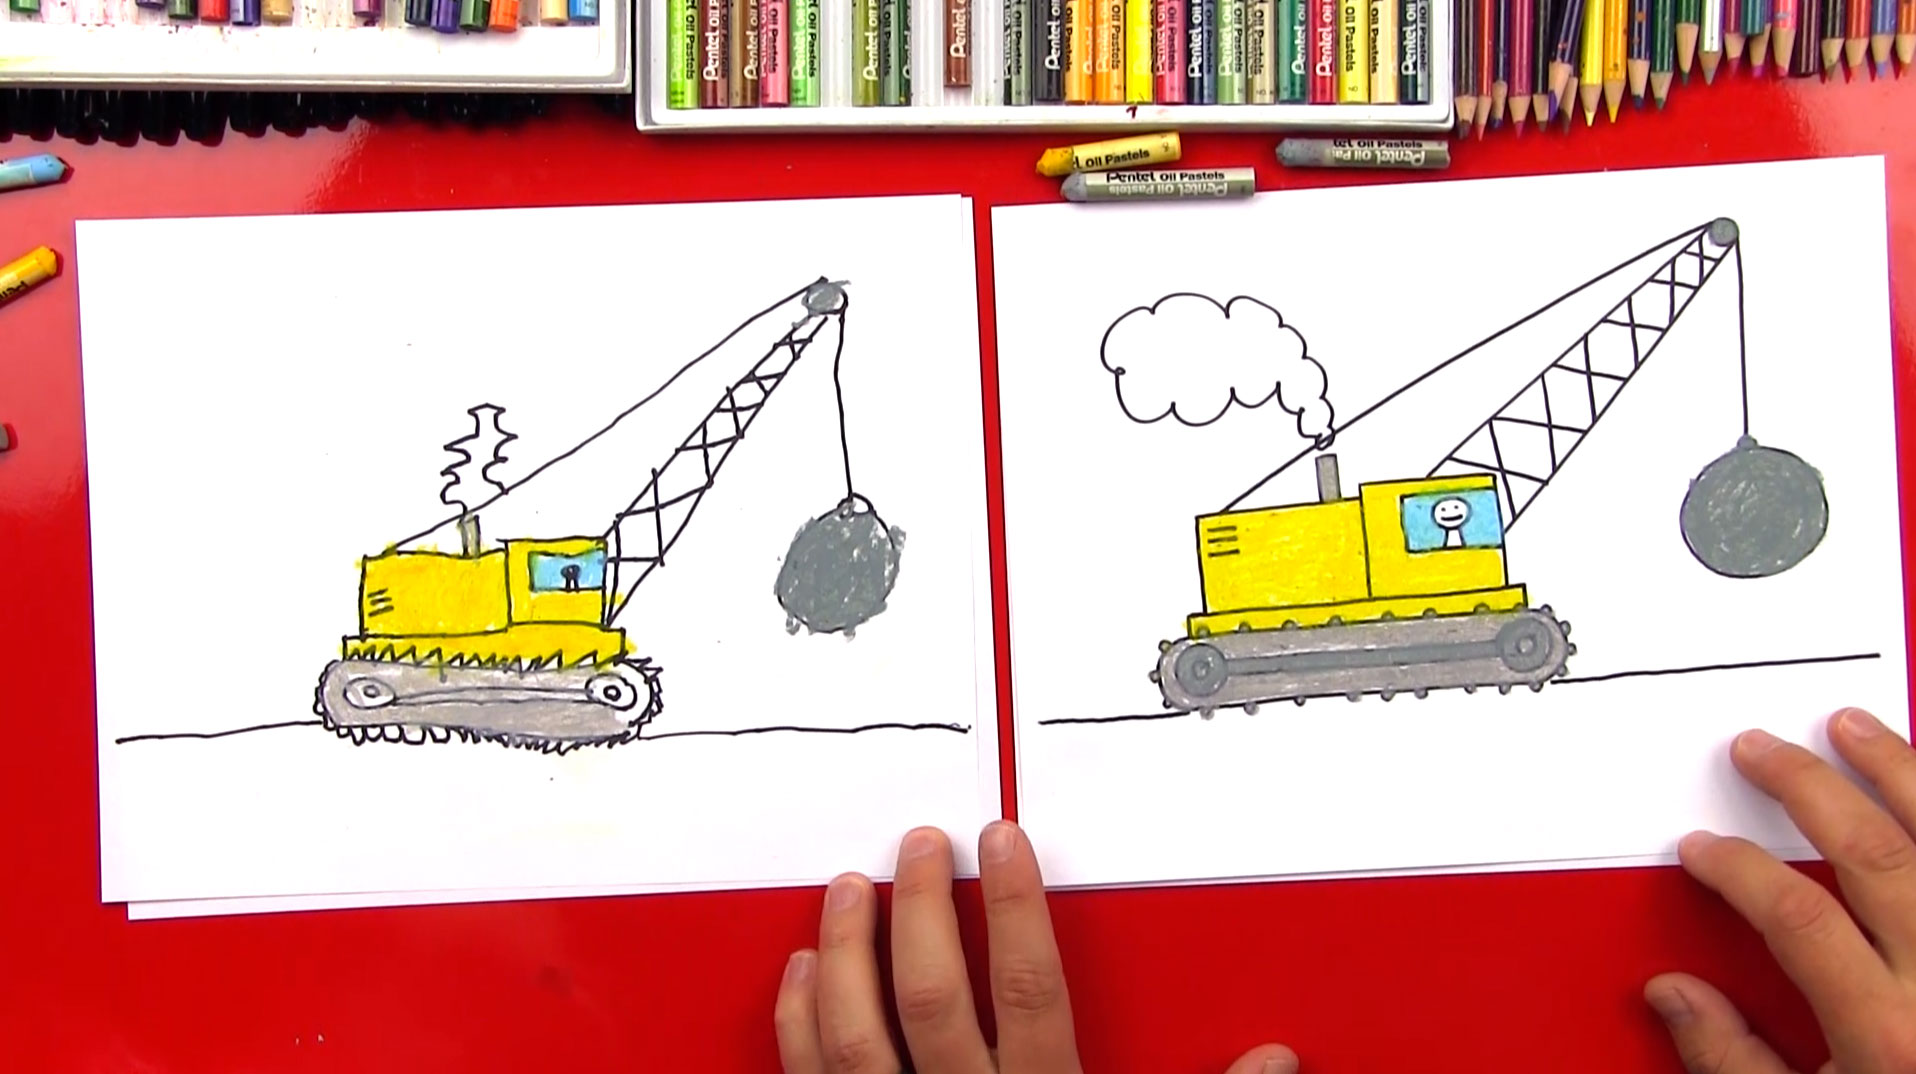 How To Draw A Wrecking Ball Crane - Art For Kids Hub Wrecking Ball Drawing